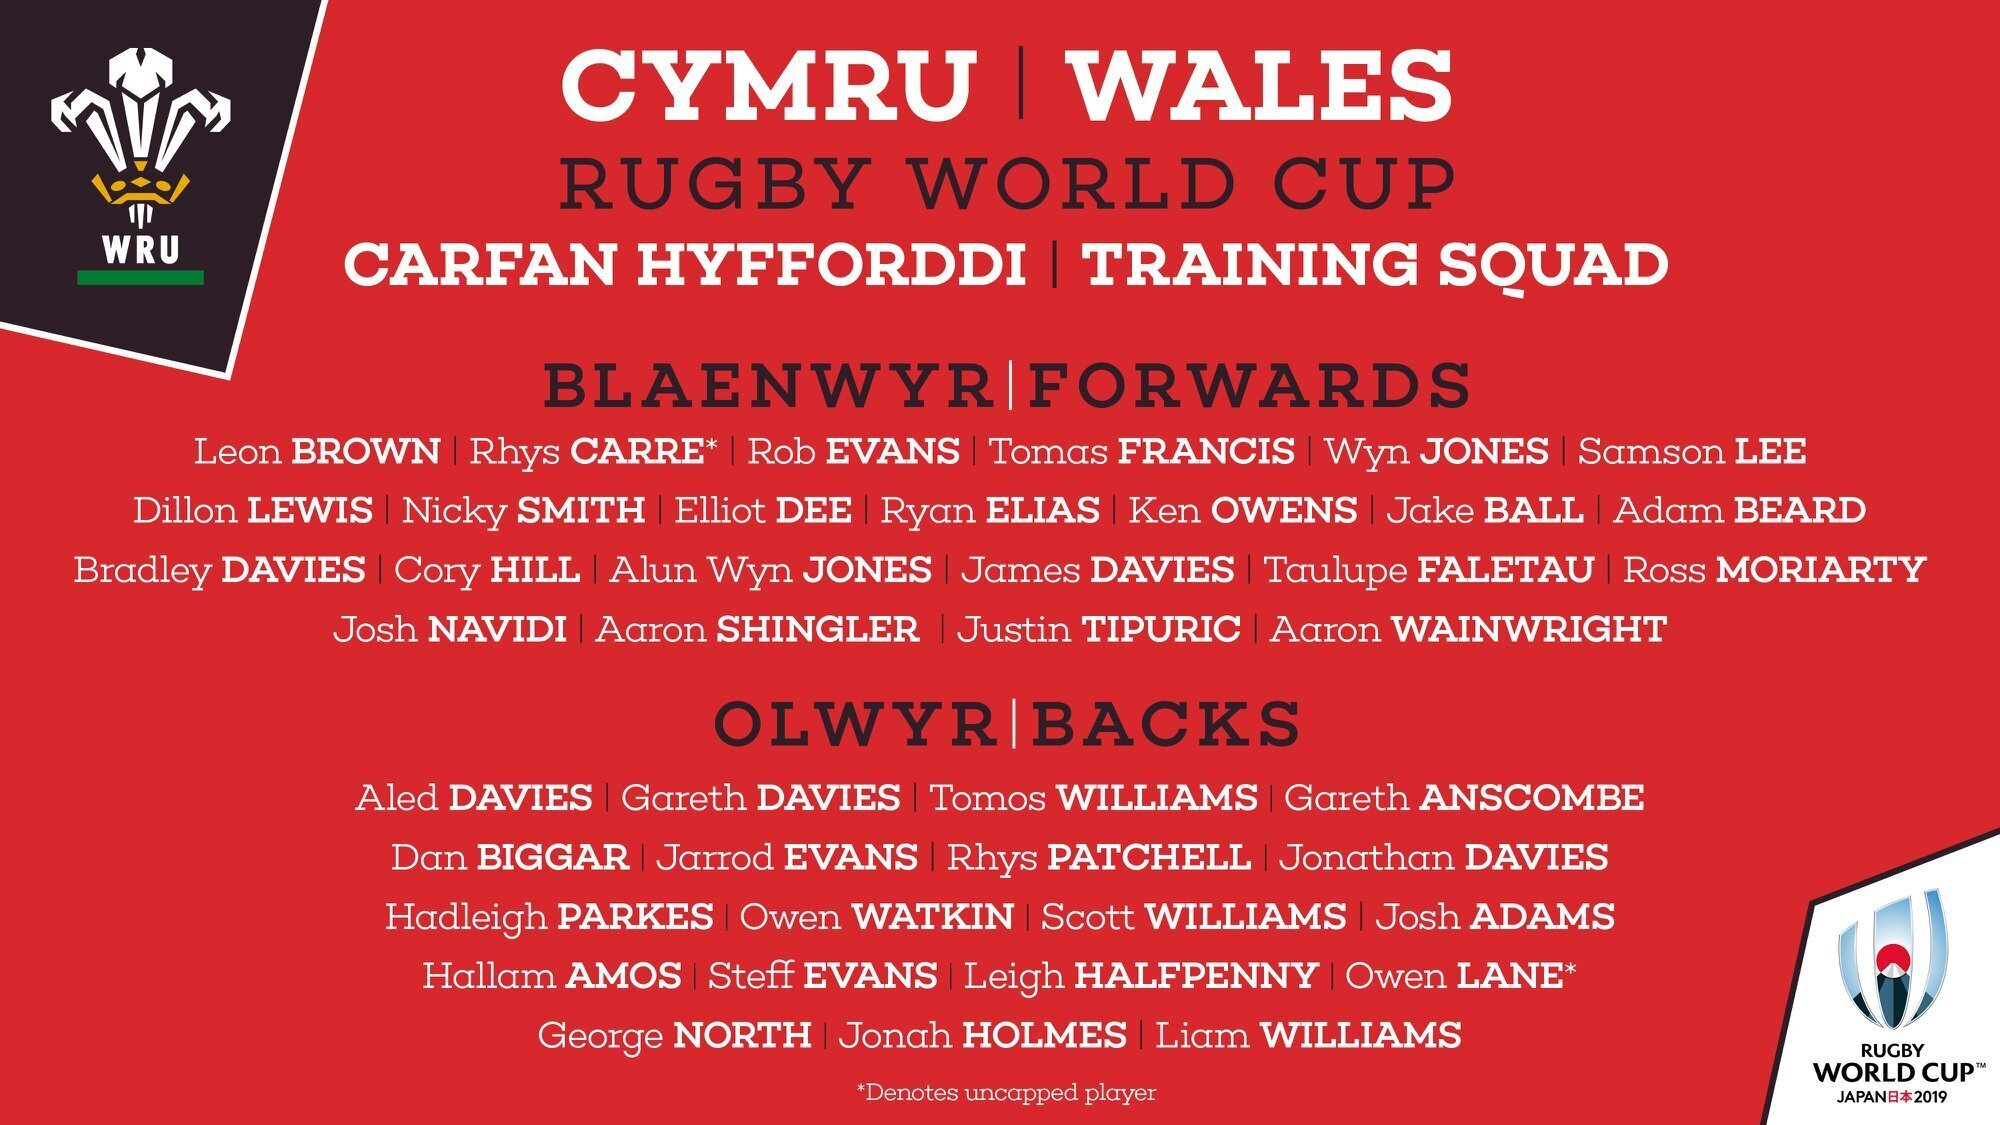 Welsh World Cup training squad